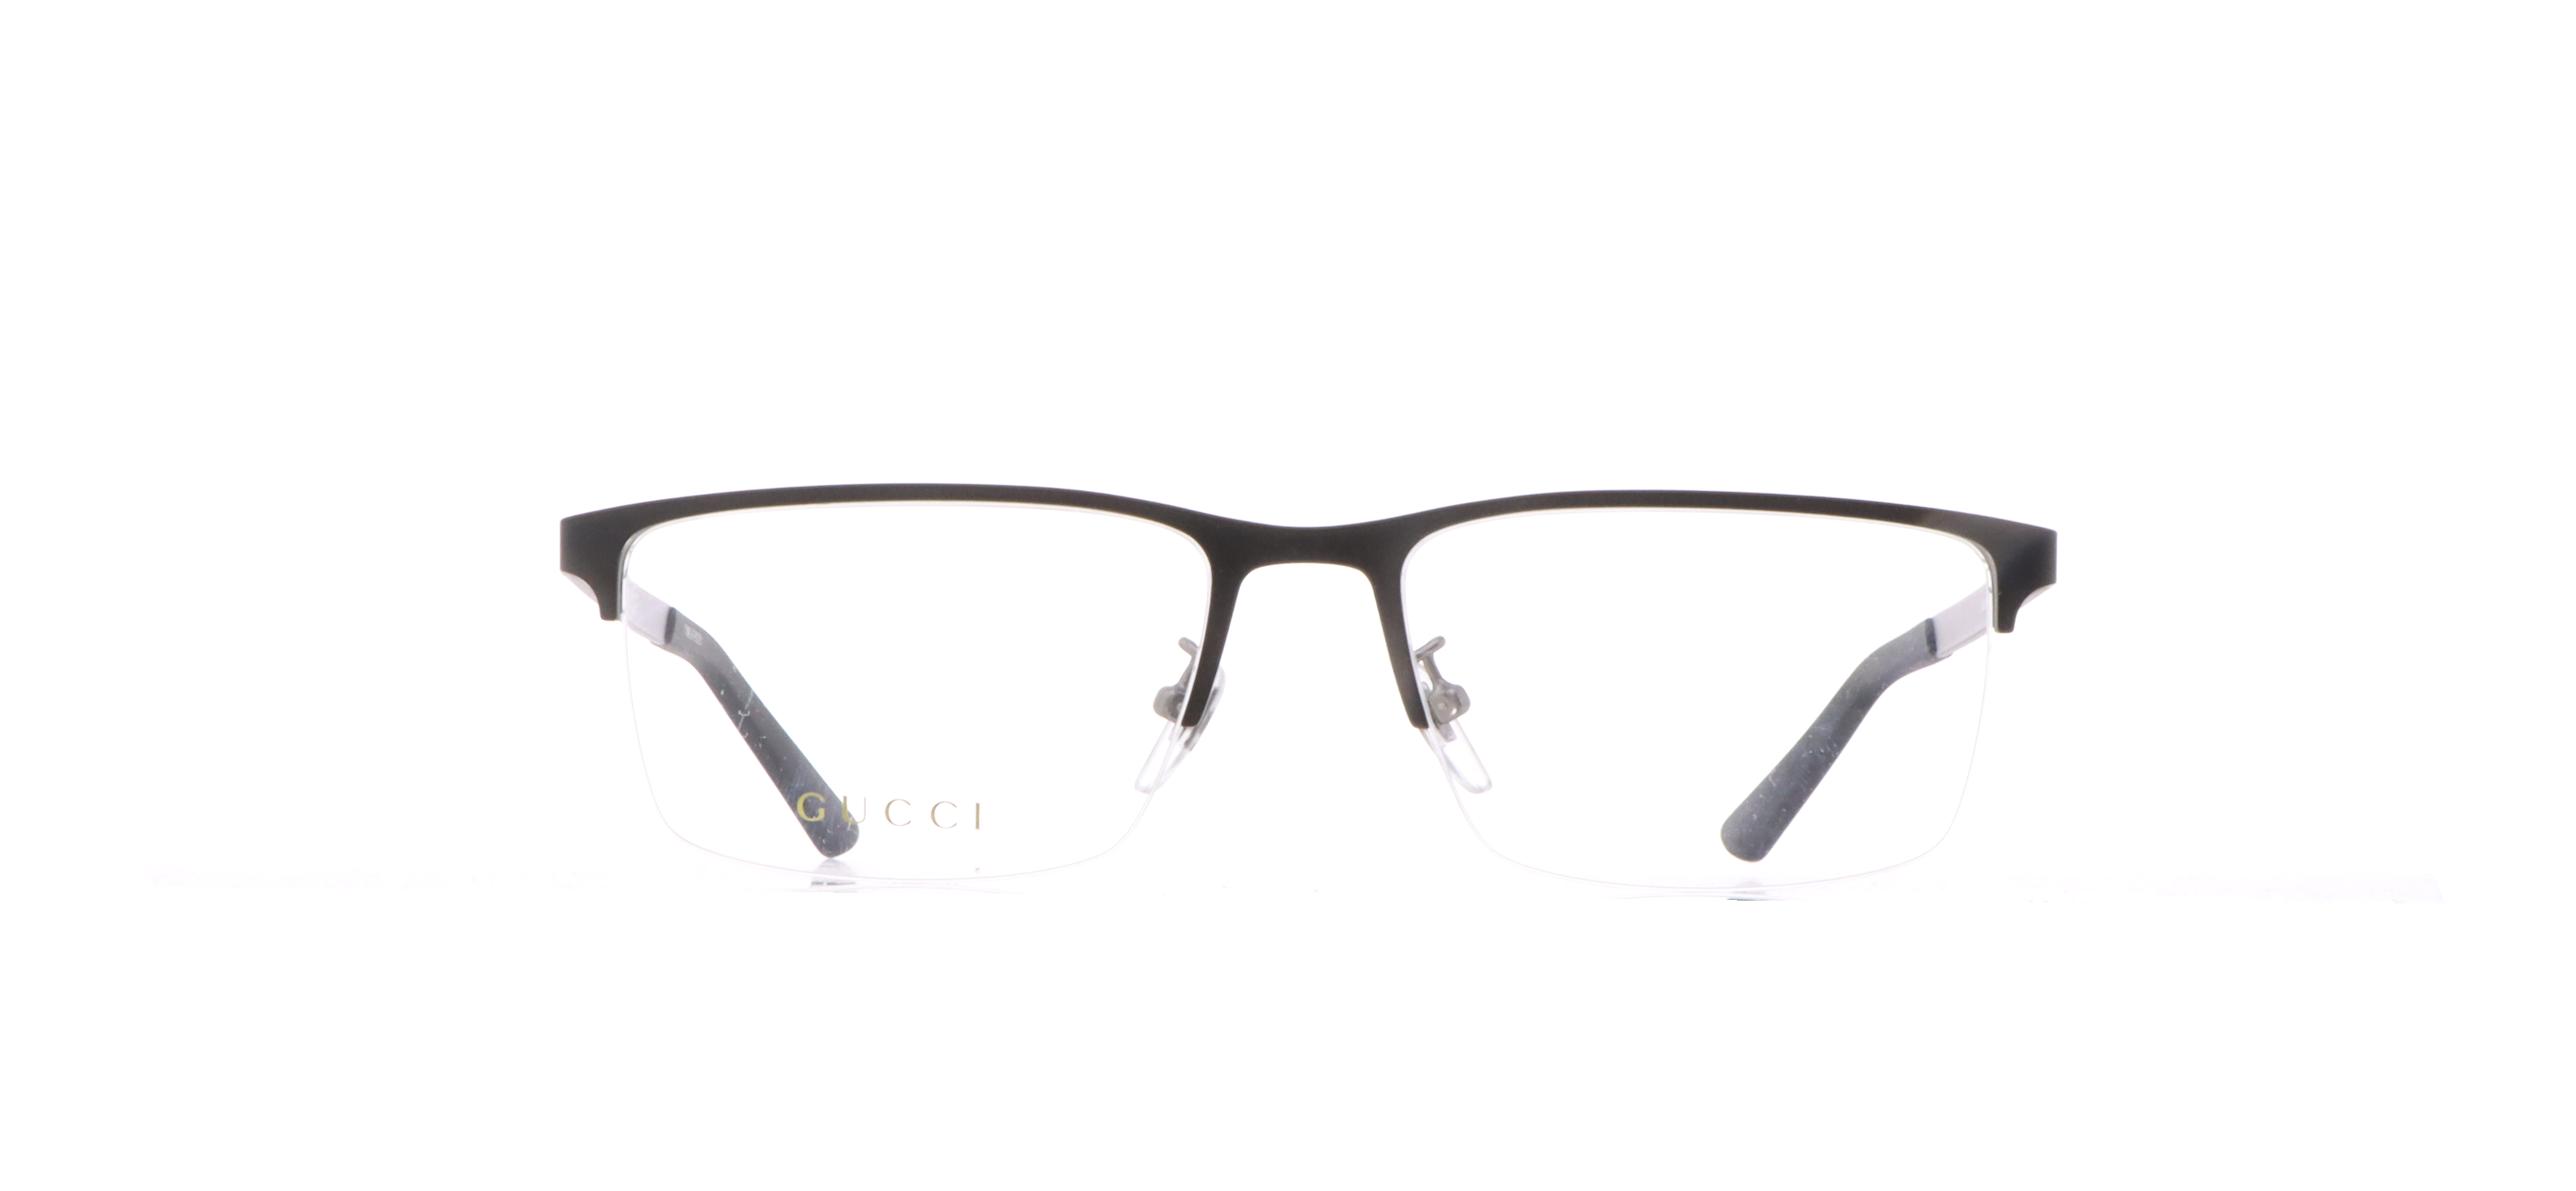 Gucci-GG0694O-Black-luxury-eyewear-Reimbold-Eye-Group-North-Atlanta-GA-eye-doctor-exams